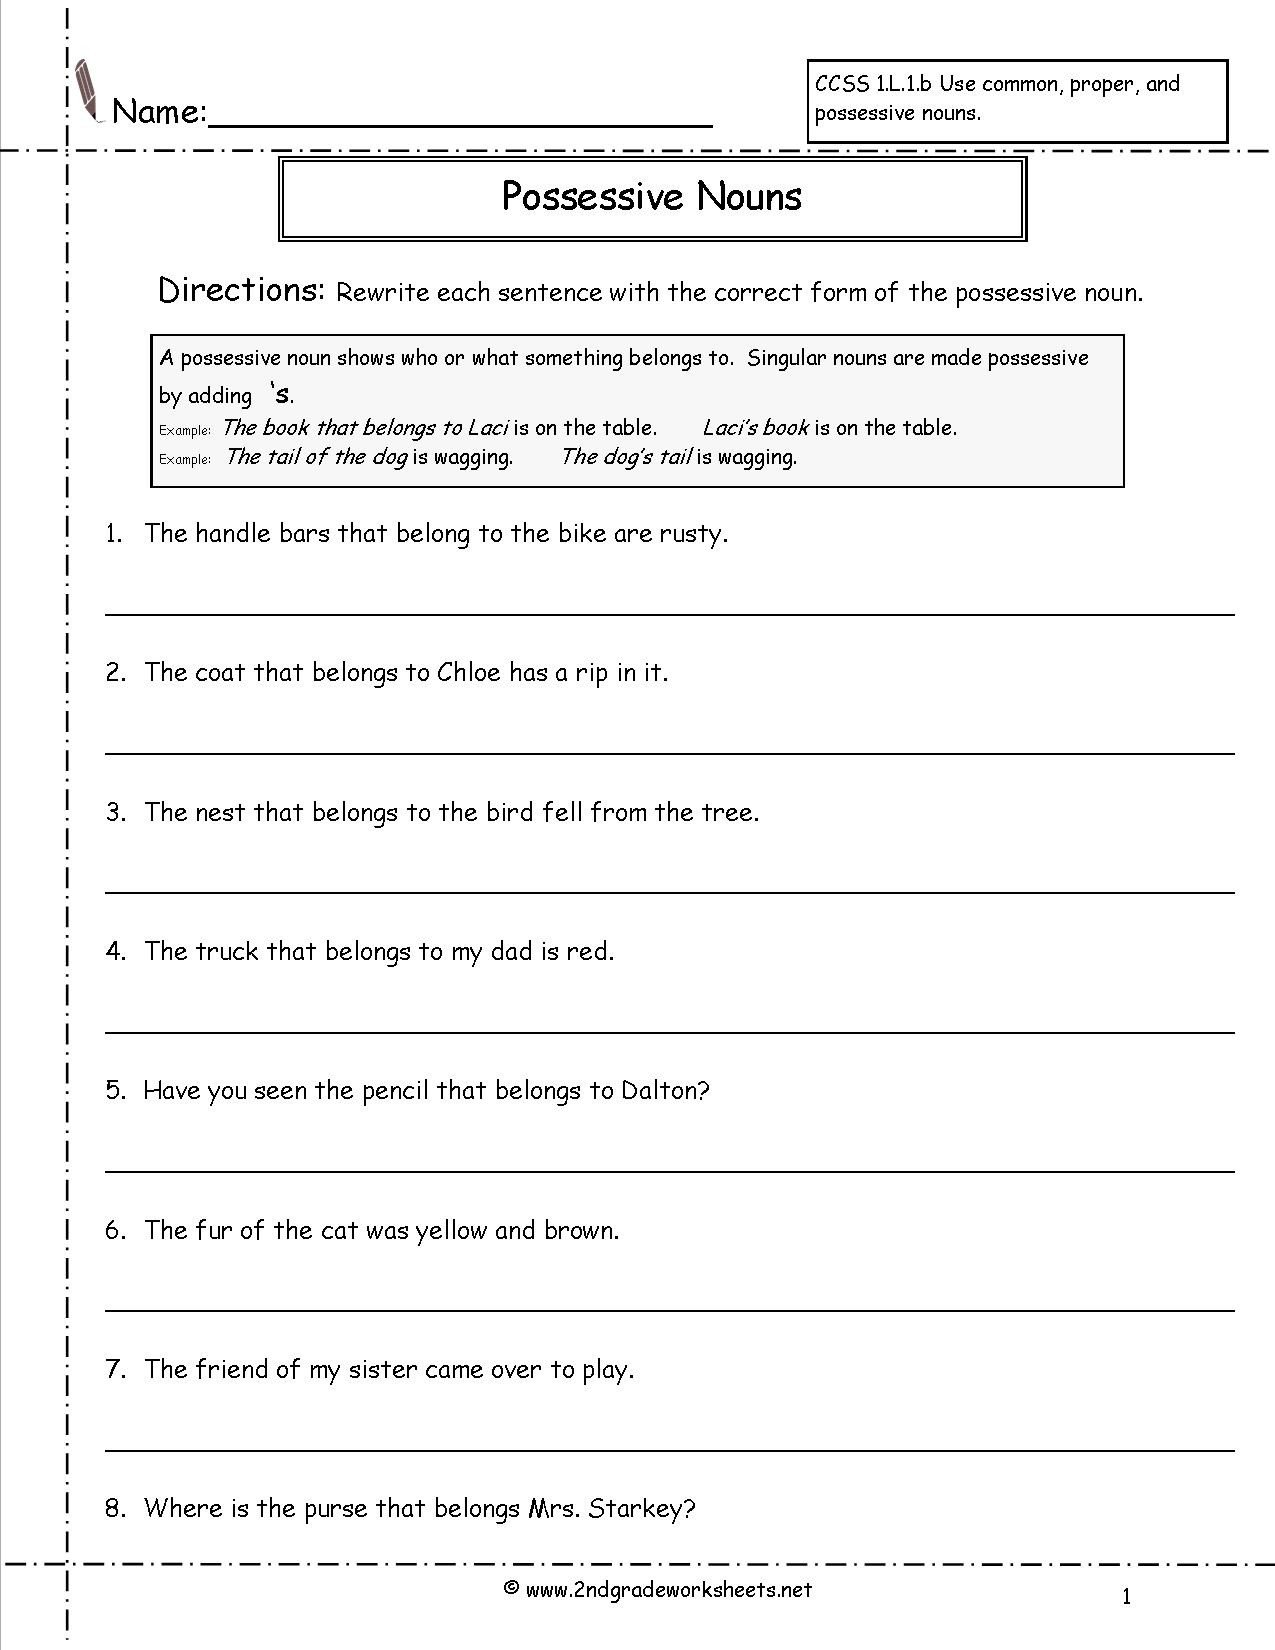 Possessive Pronoun Worksheets 5th Grade Free Pronoun Worksheet for 2nd Grade